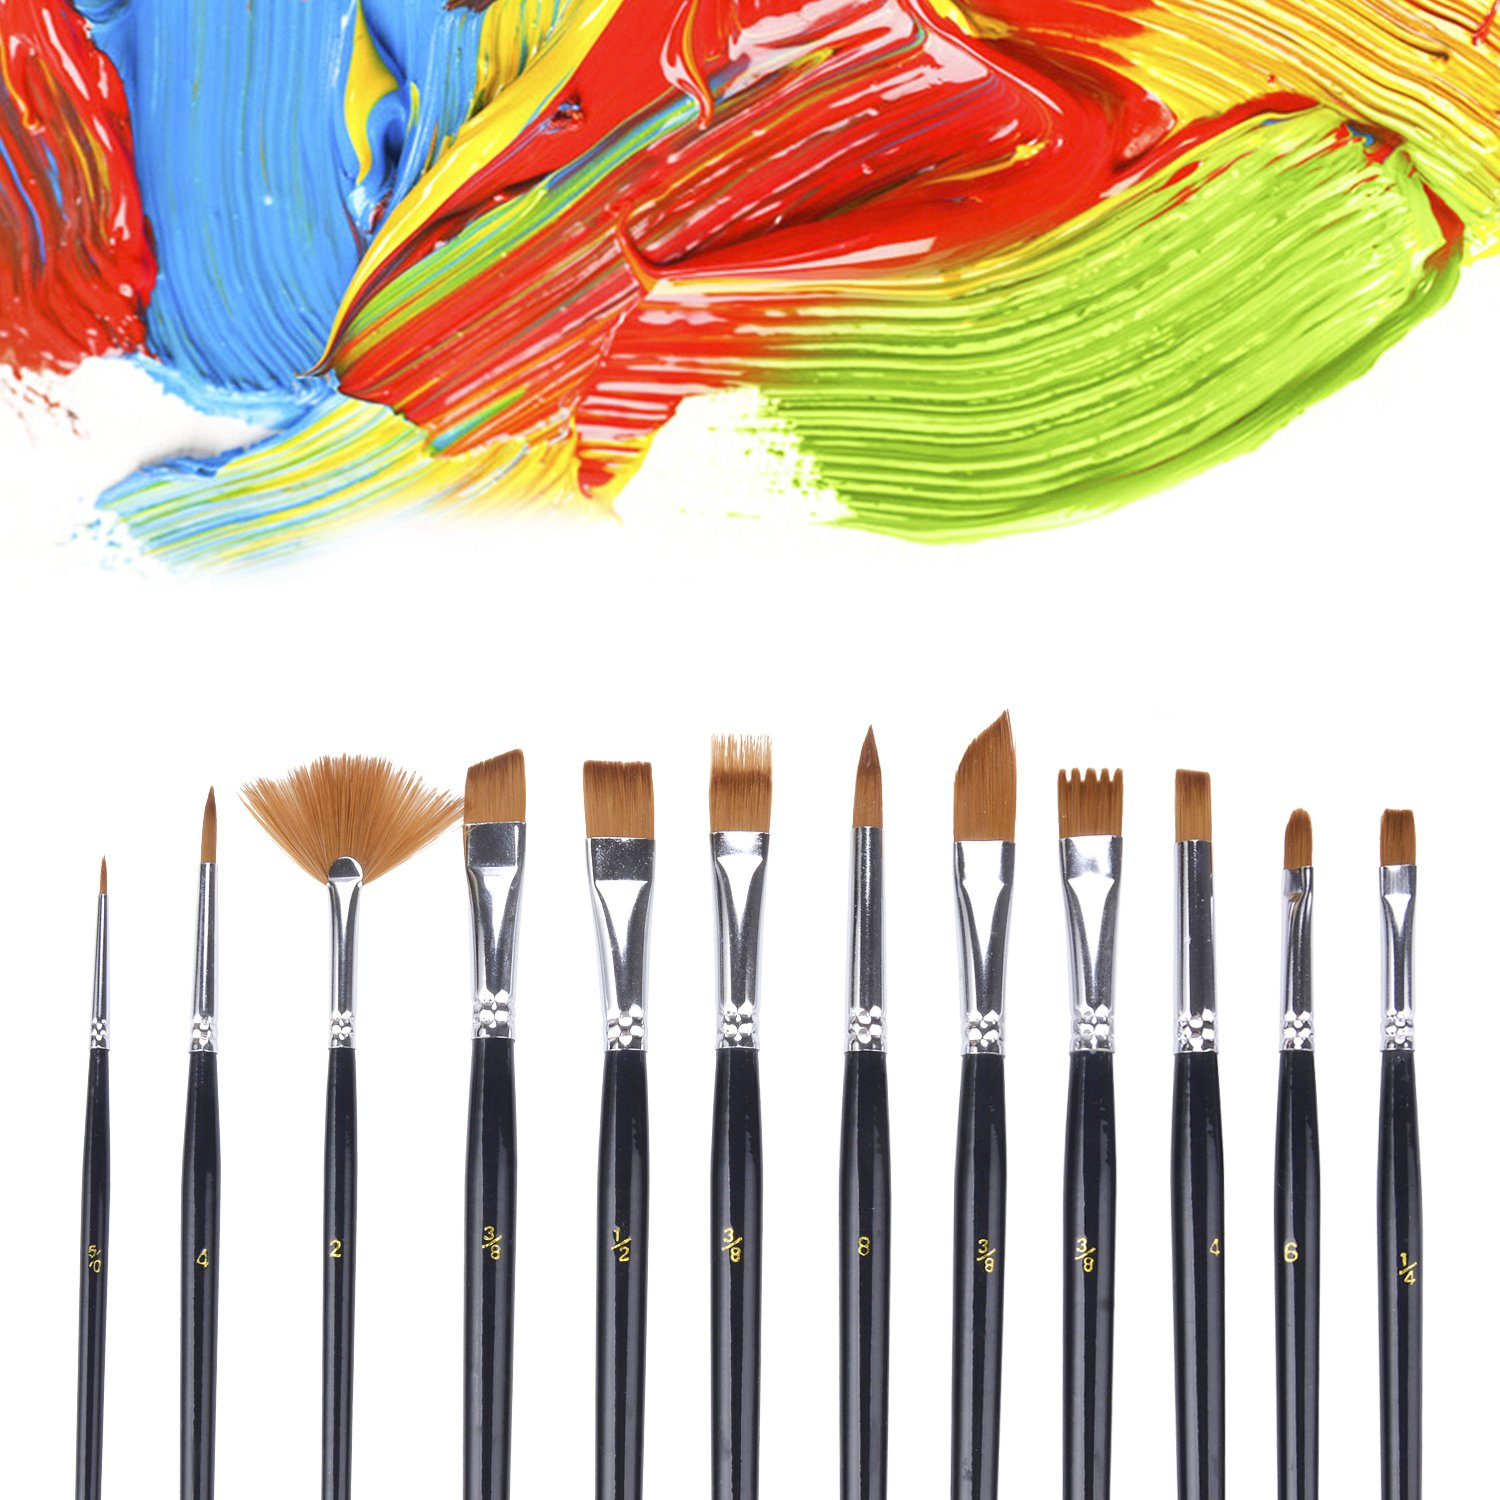 Paint Brushes,Fascigirl 12 Pc Round Pointed Tip Nylon Hair Brush Set with 2 Pack Palettes for Watercolor Oil Acrylic Painting by Fascigirl